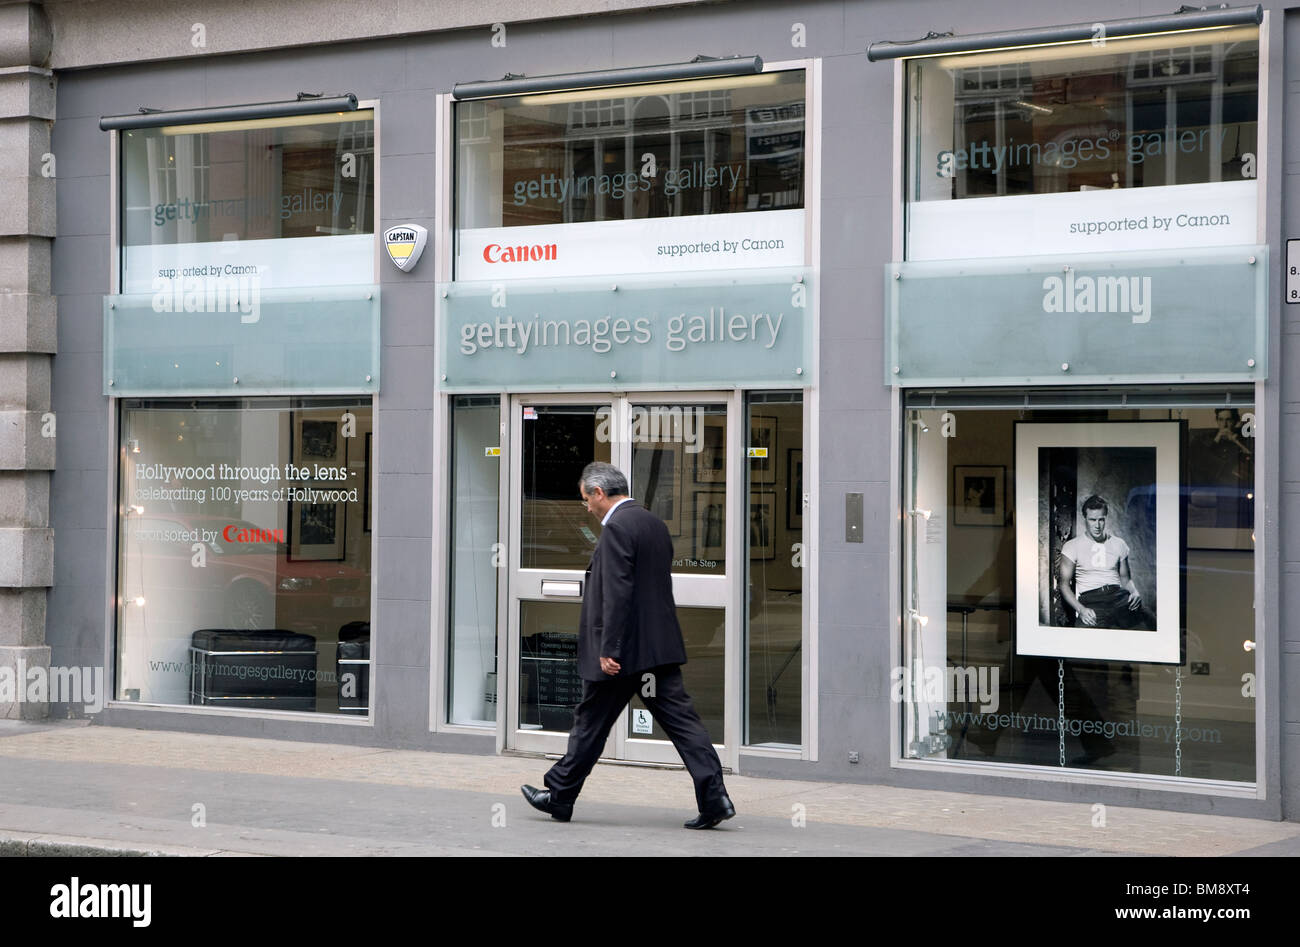 Getty Images Gallery in London's West End - Stock Image